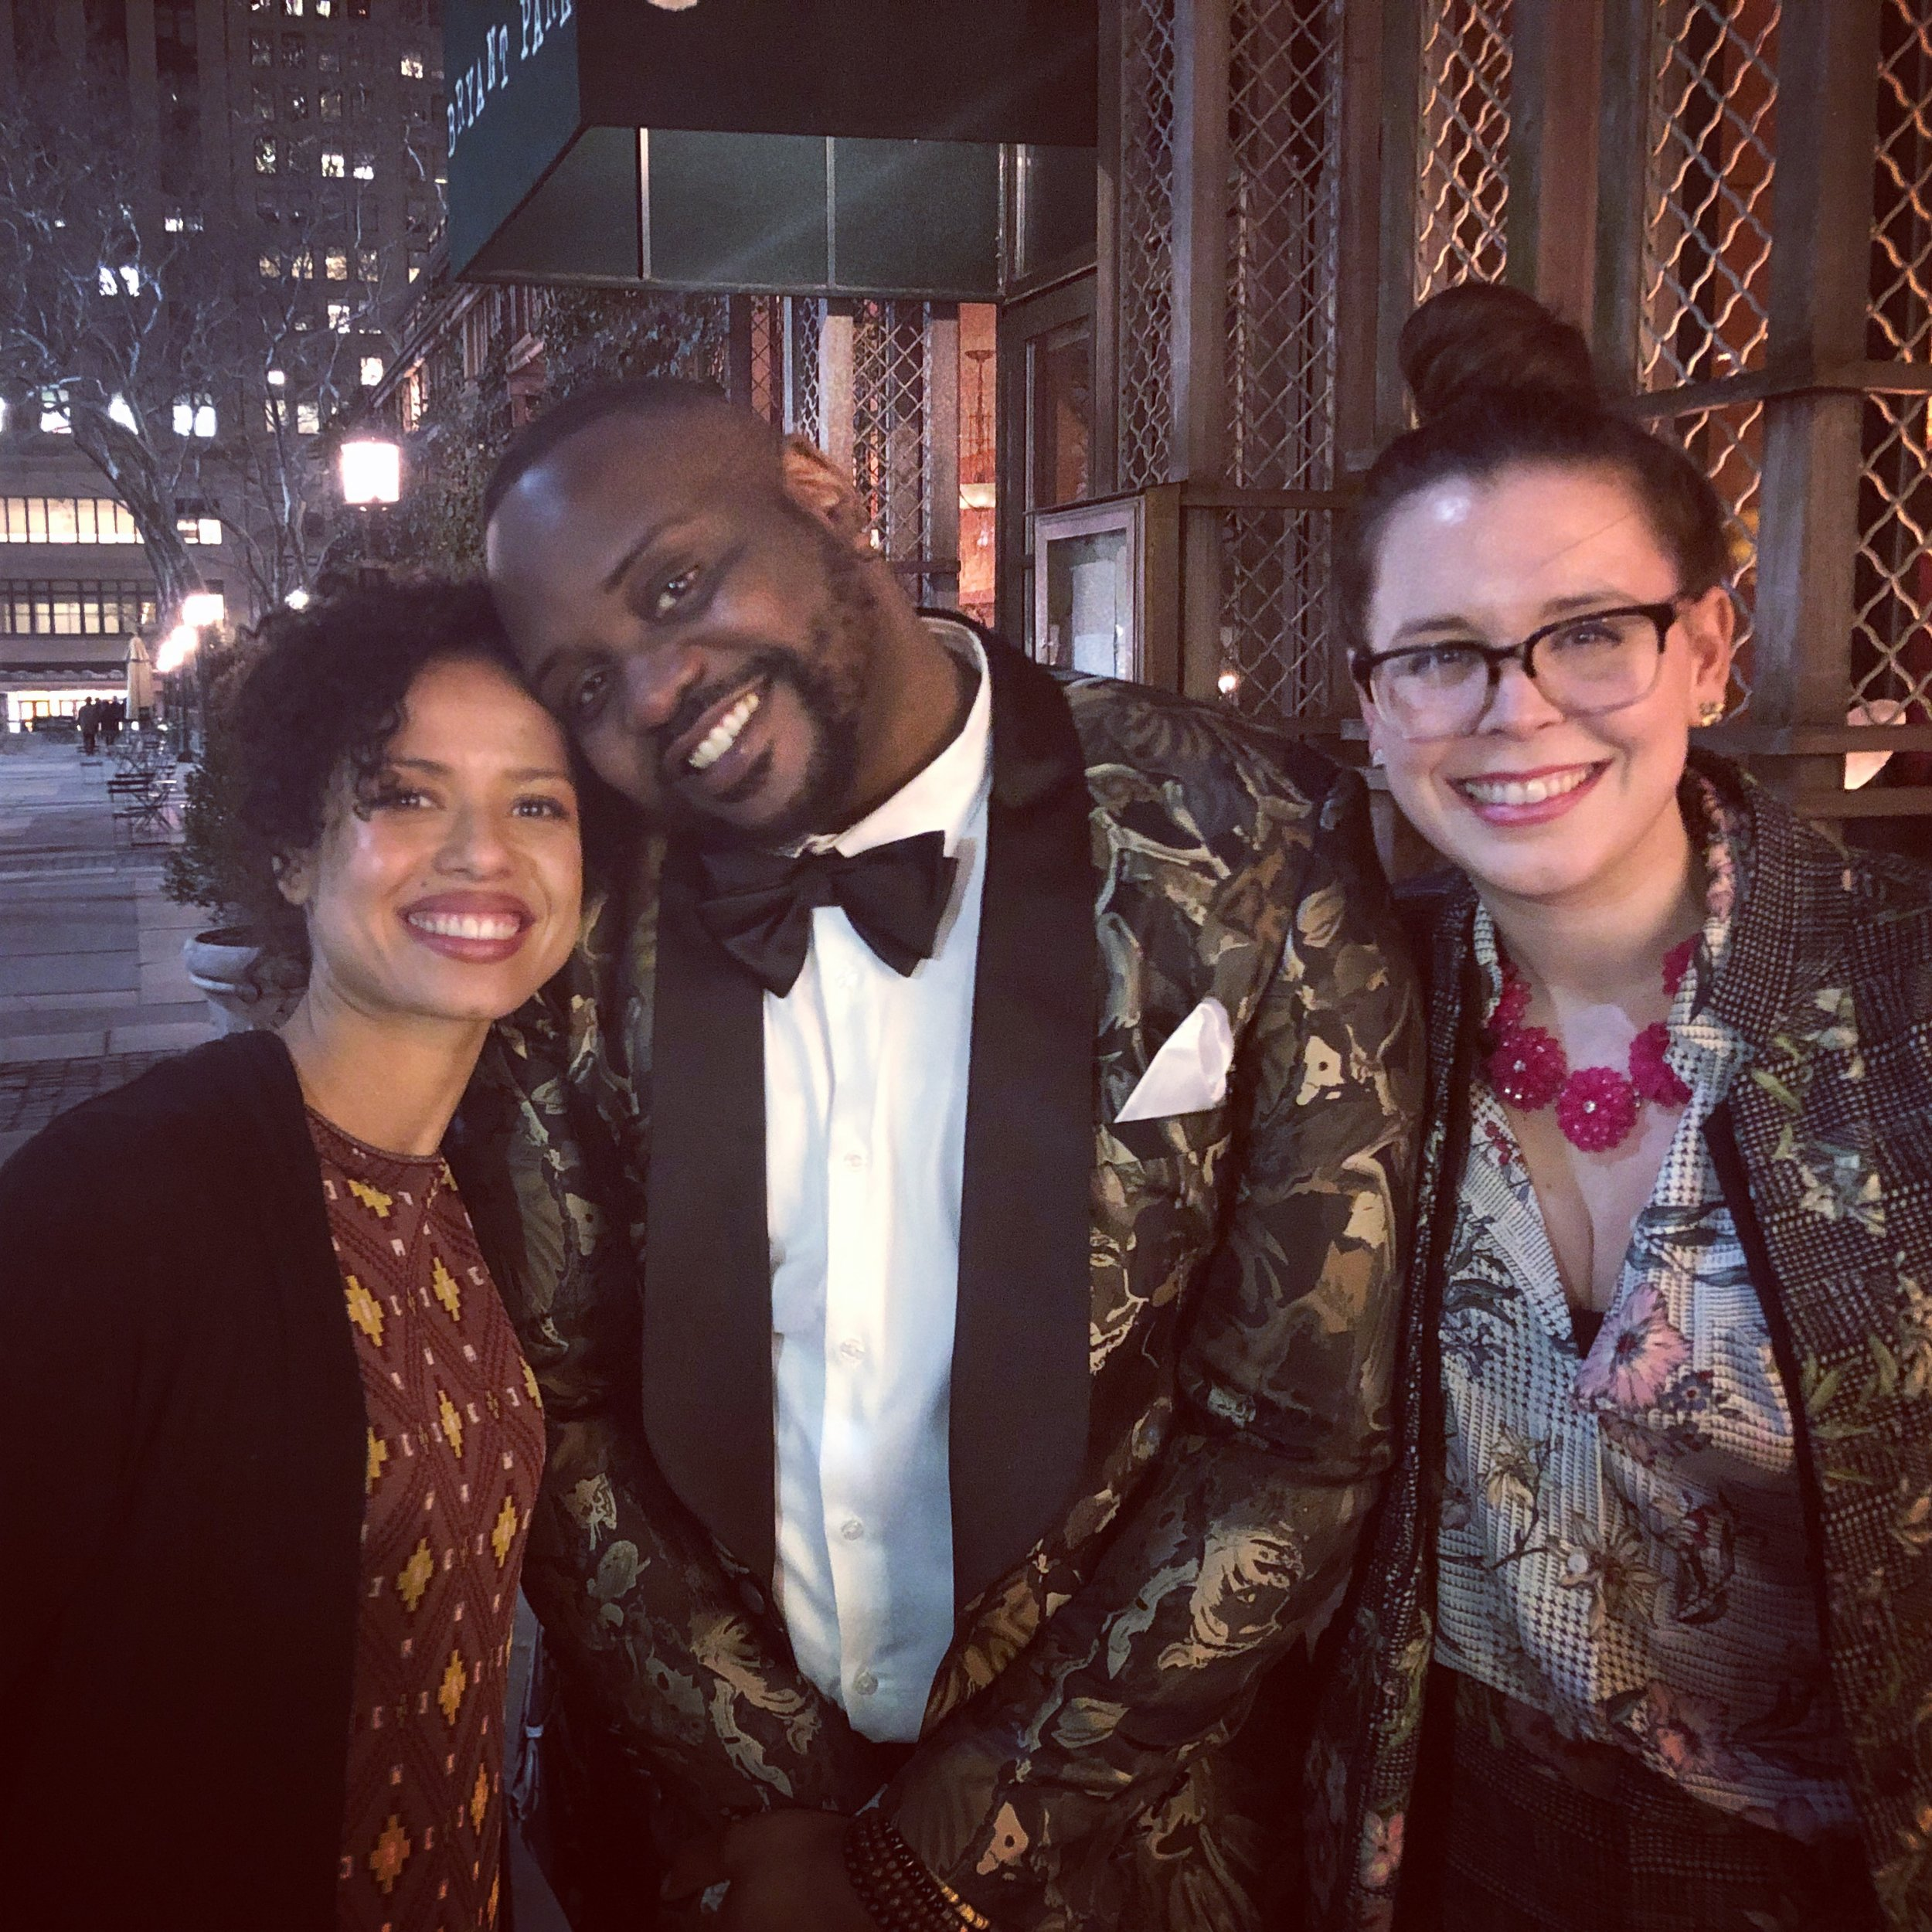 10 - Brian's premiere of Lobby Hero on Broadway early 2018 - Gugu and I were both at the premiere so we had a small Irreplaceable You reunion.jpg